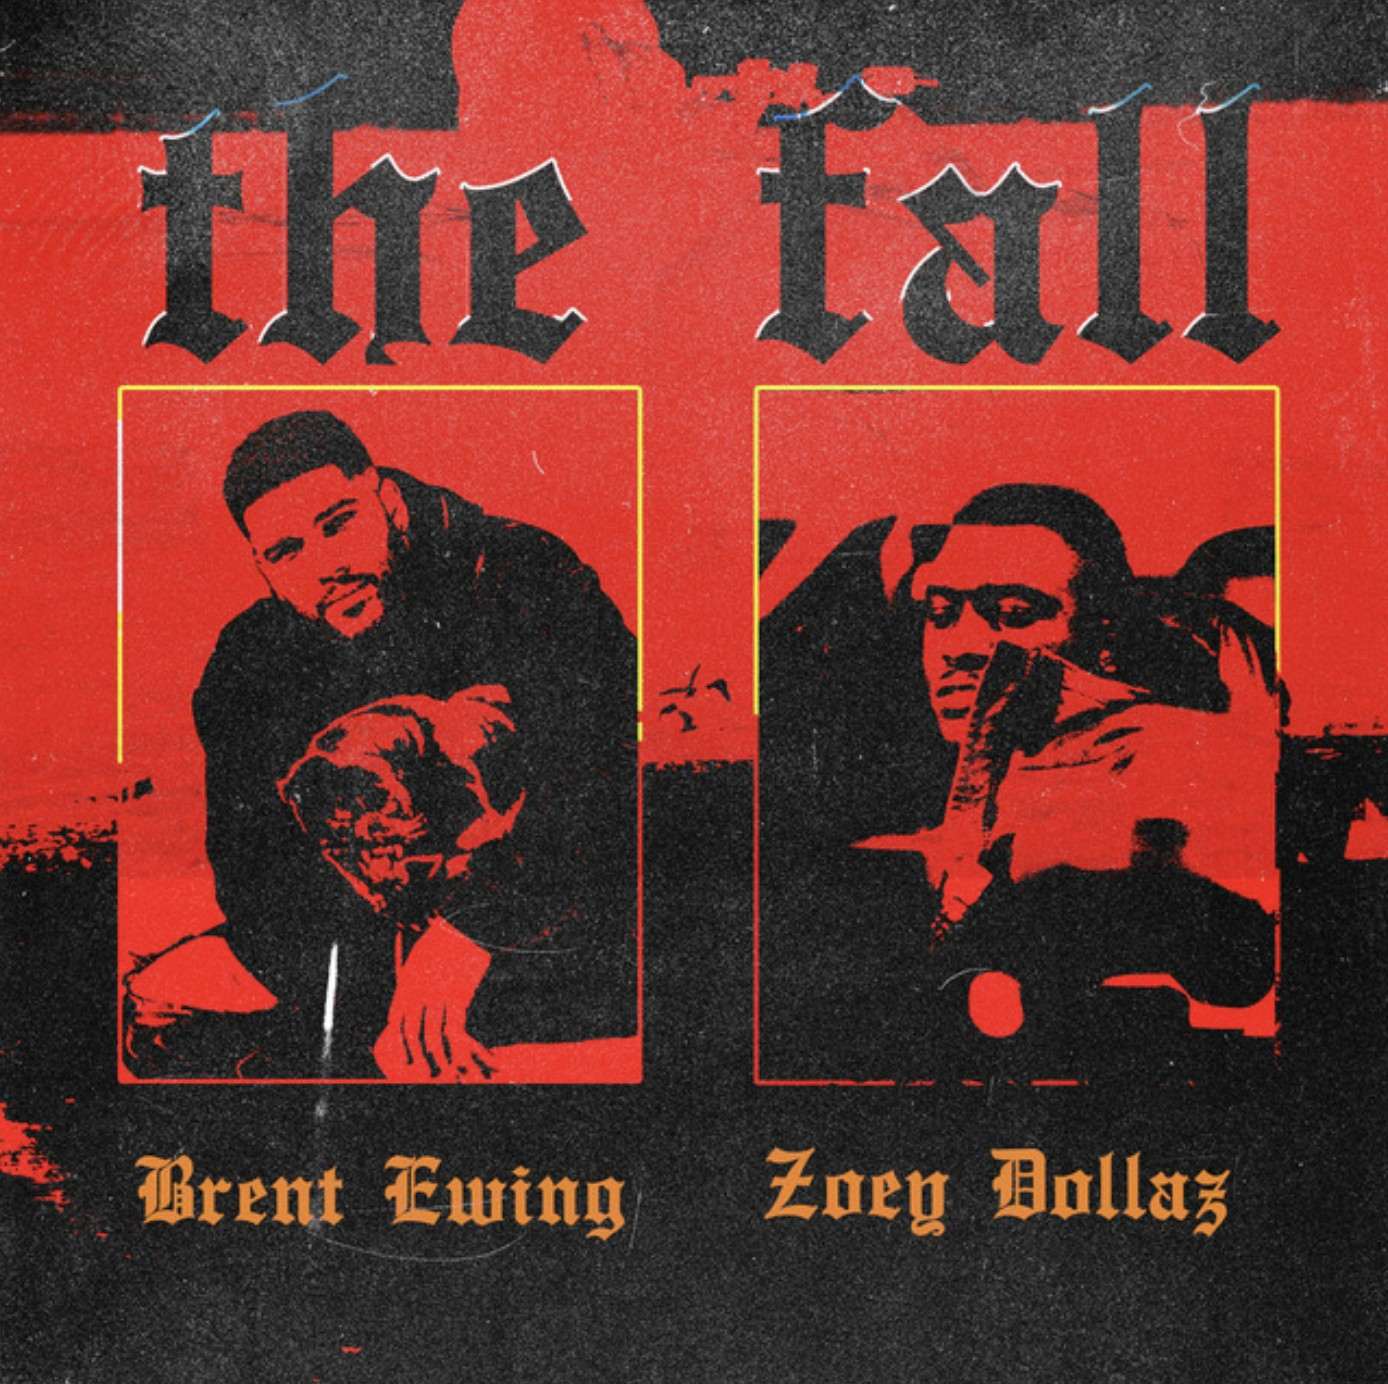 The Fall – [Brent Ewing] ft. [Zoey Dollaz]